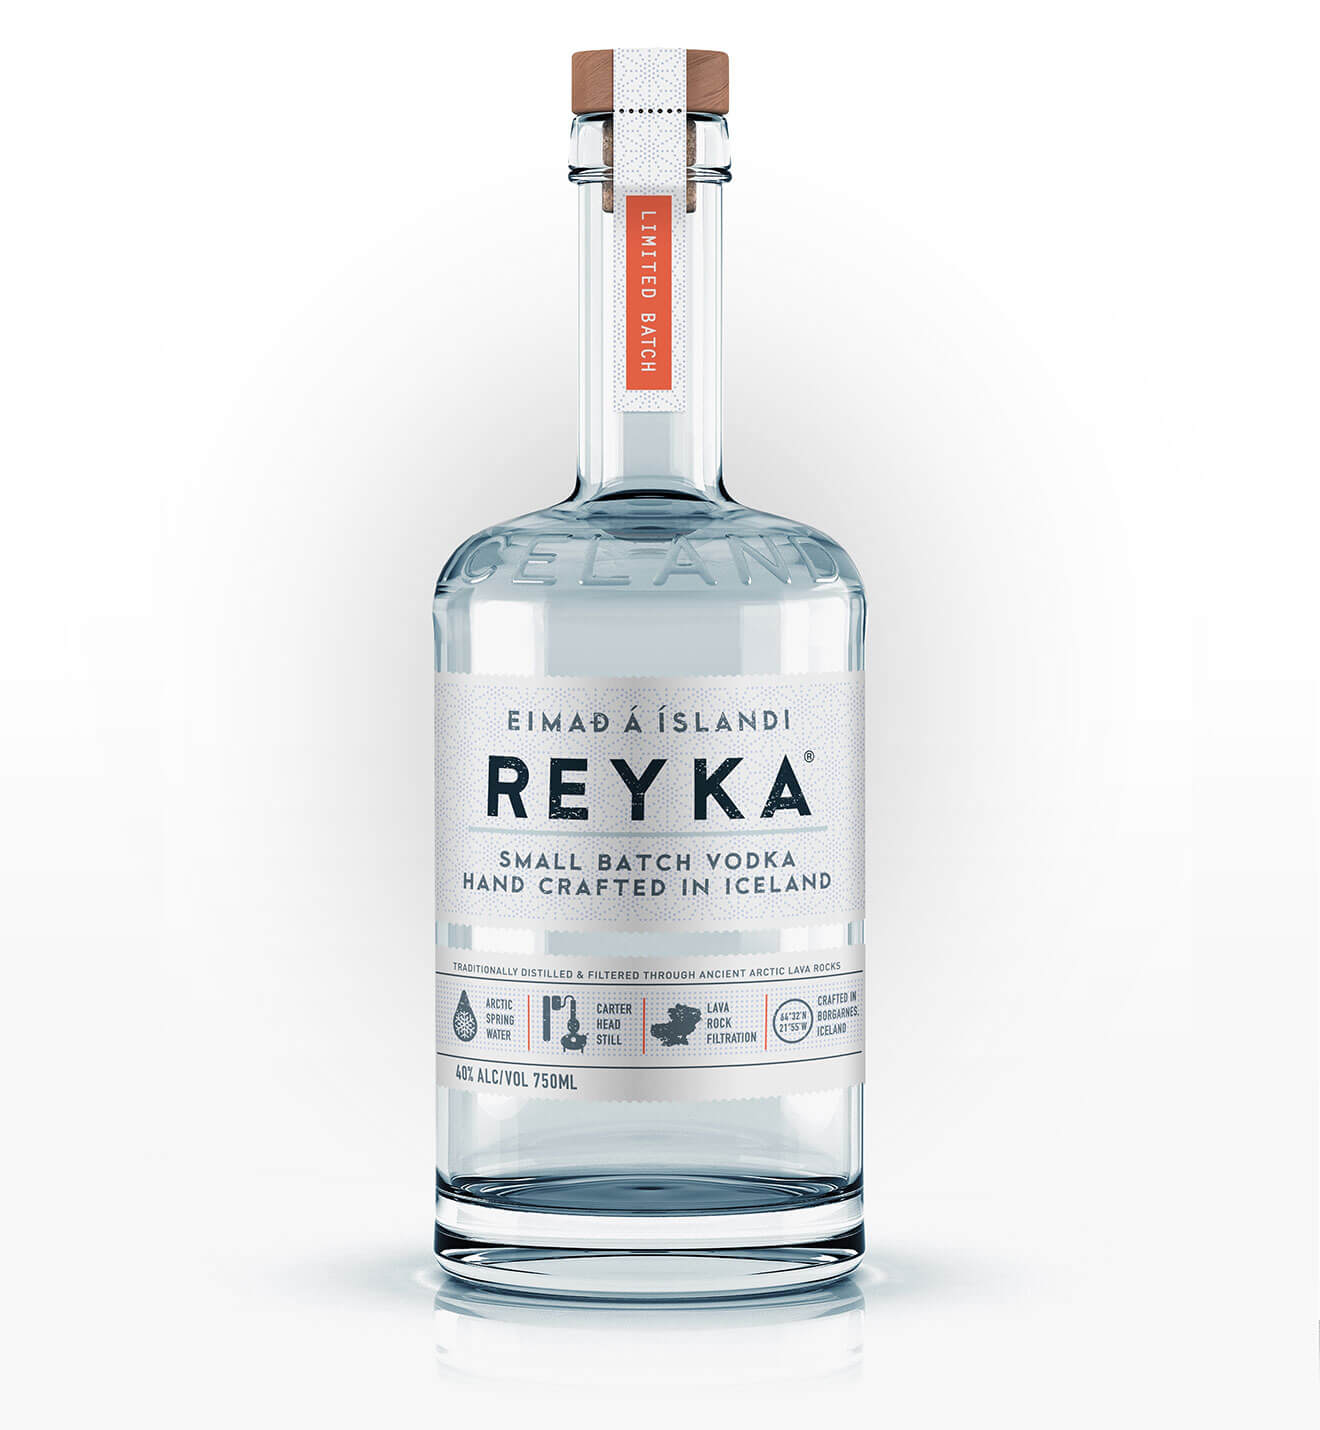 Reyka Vodka, bottle with reflection, light gradient